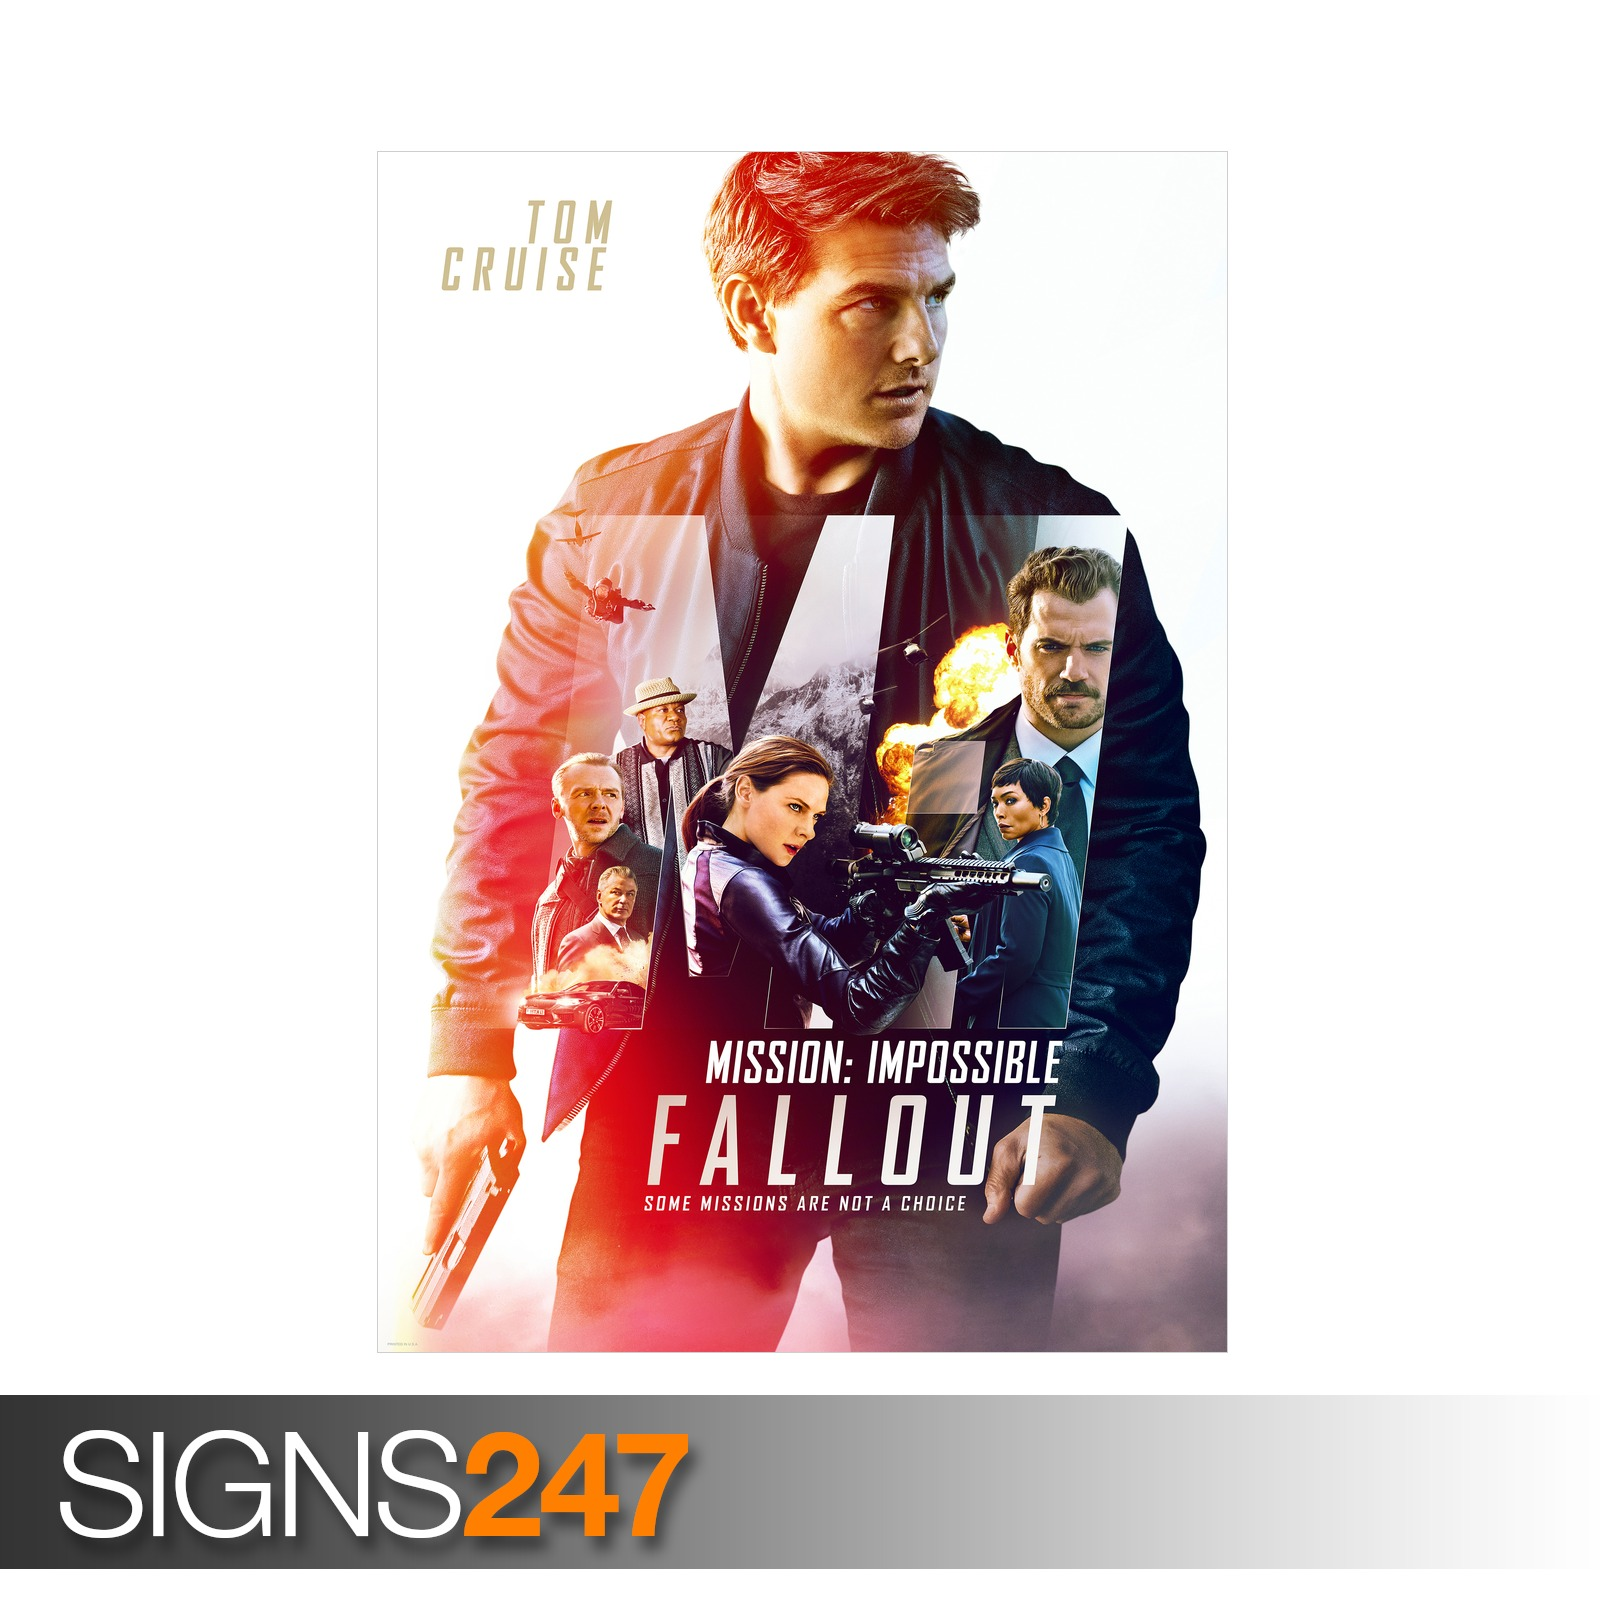 MISSION-IMPOSSIBLE-FALLOUT-TOM-CRUISE-ZZ034-MOVIE-POSTER-Poster-A0-A1-A2-A3